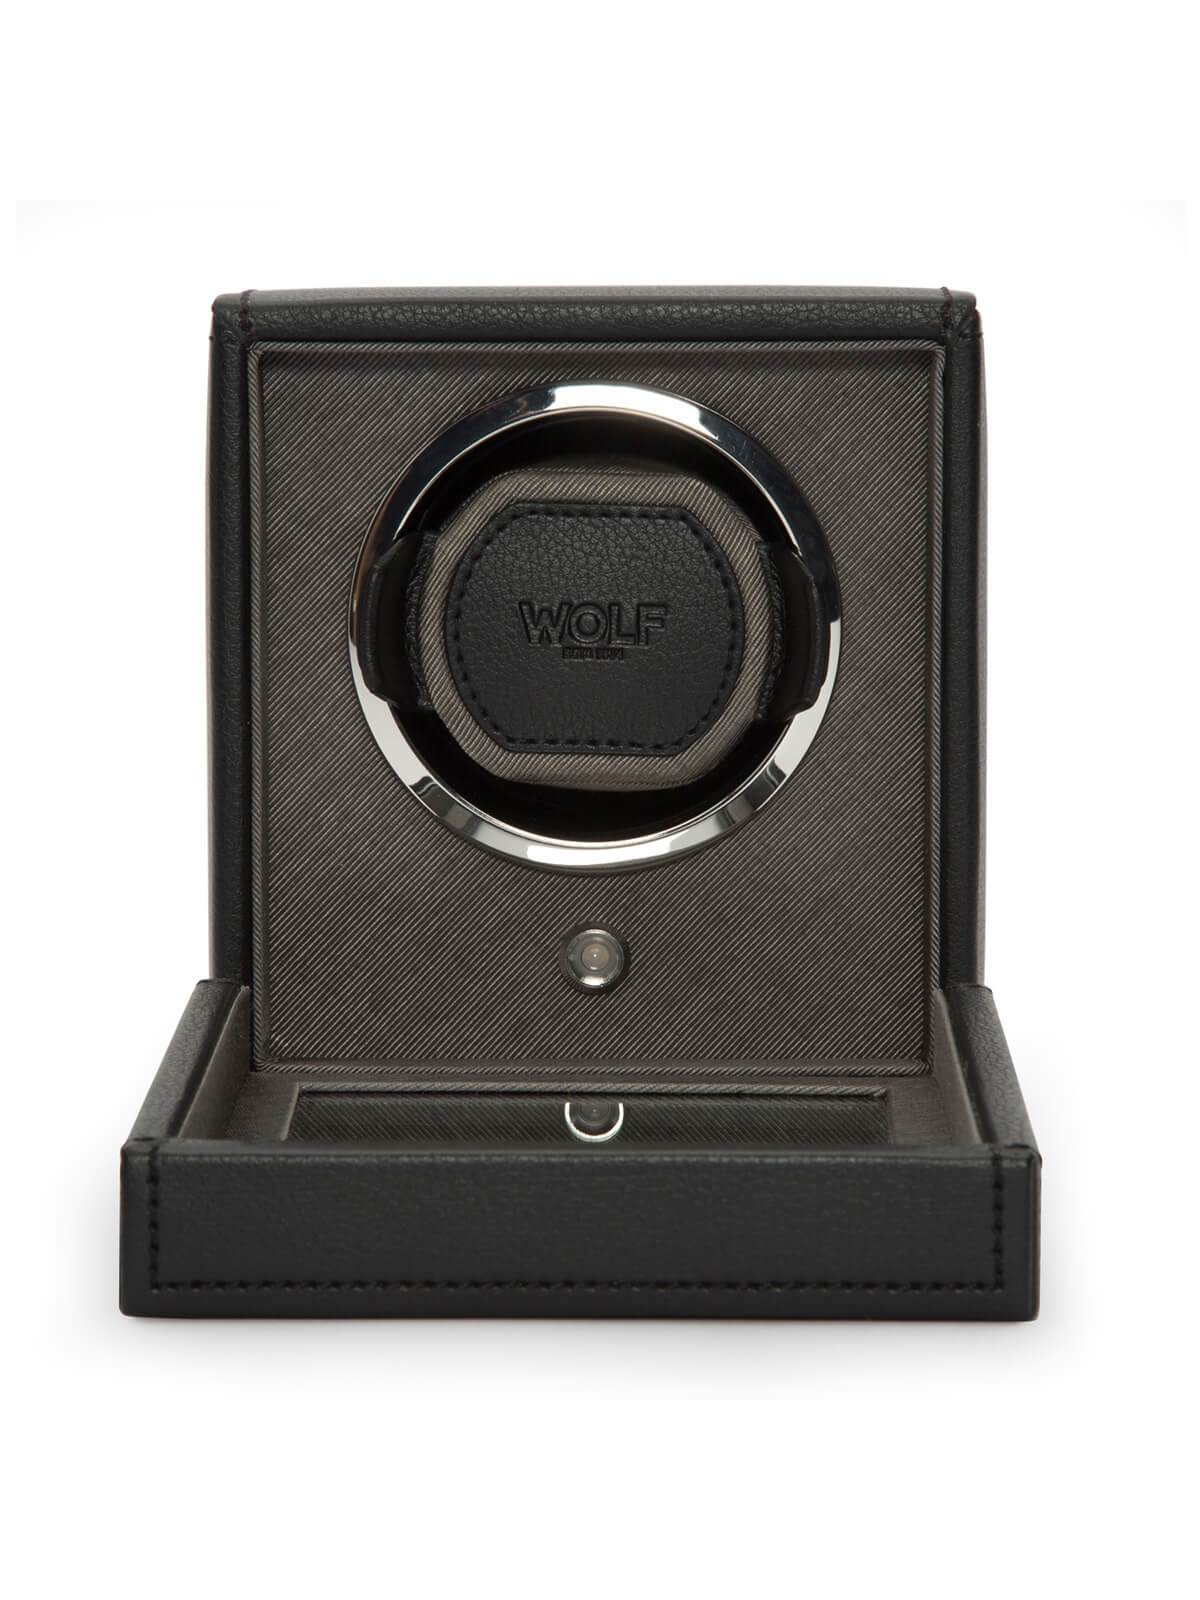 Wolf Cub Single Watch Winder with Cover in Black 461103